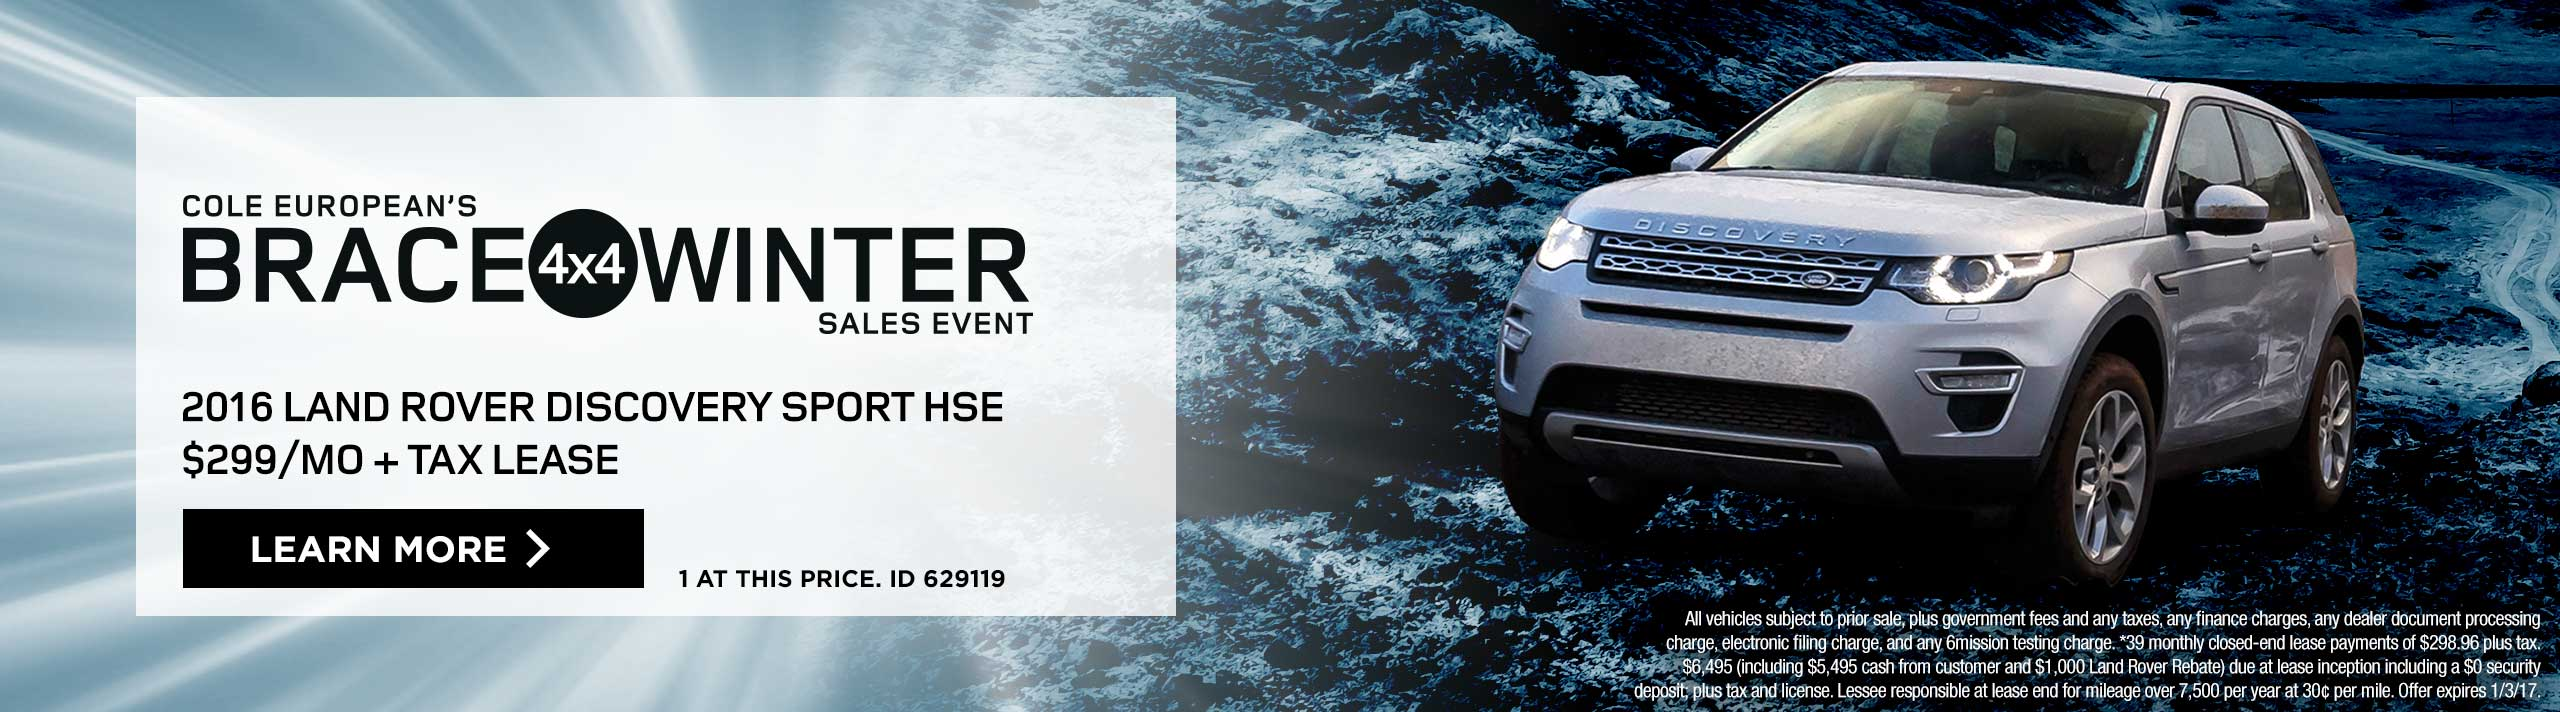 Brace 4x4 Winter Sales Event